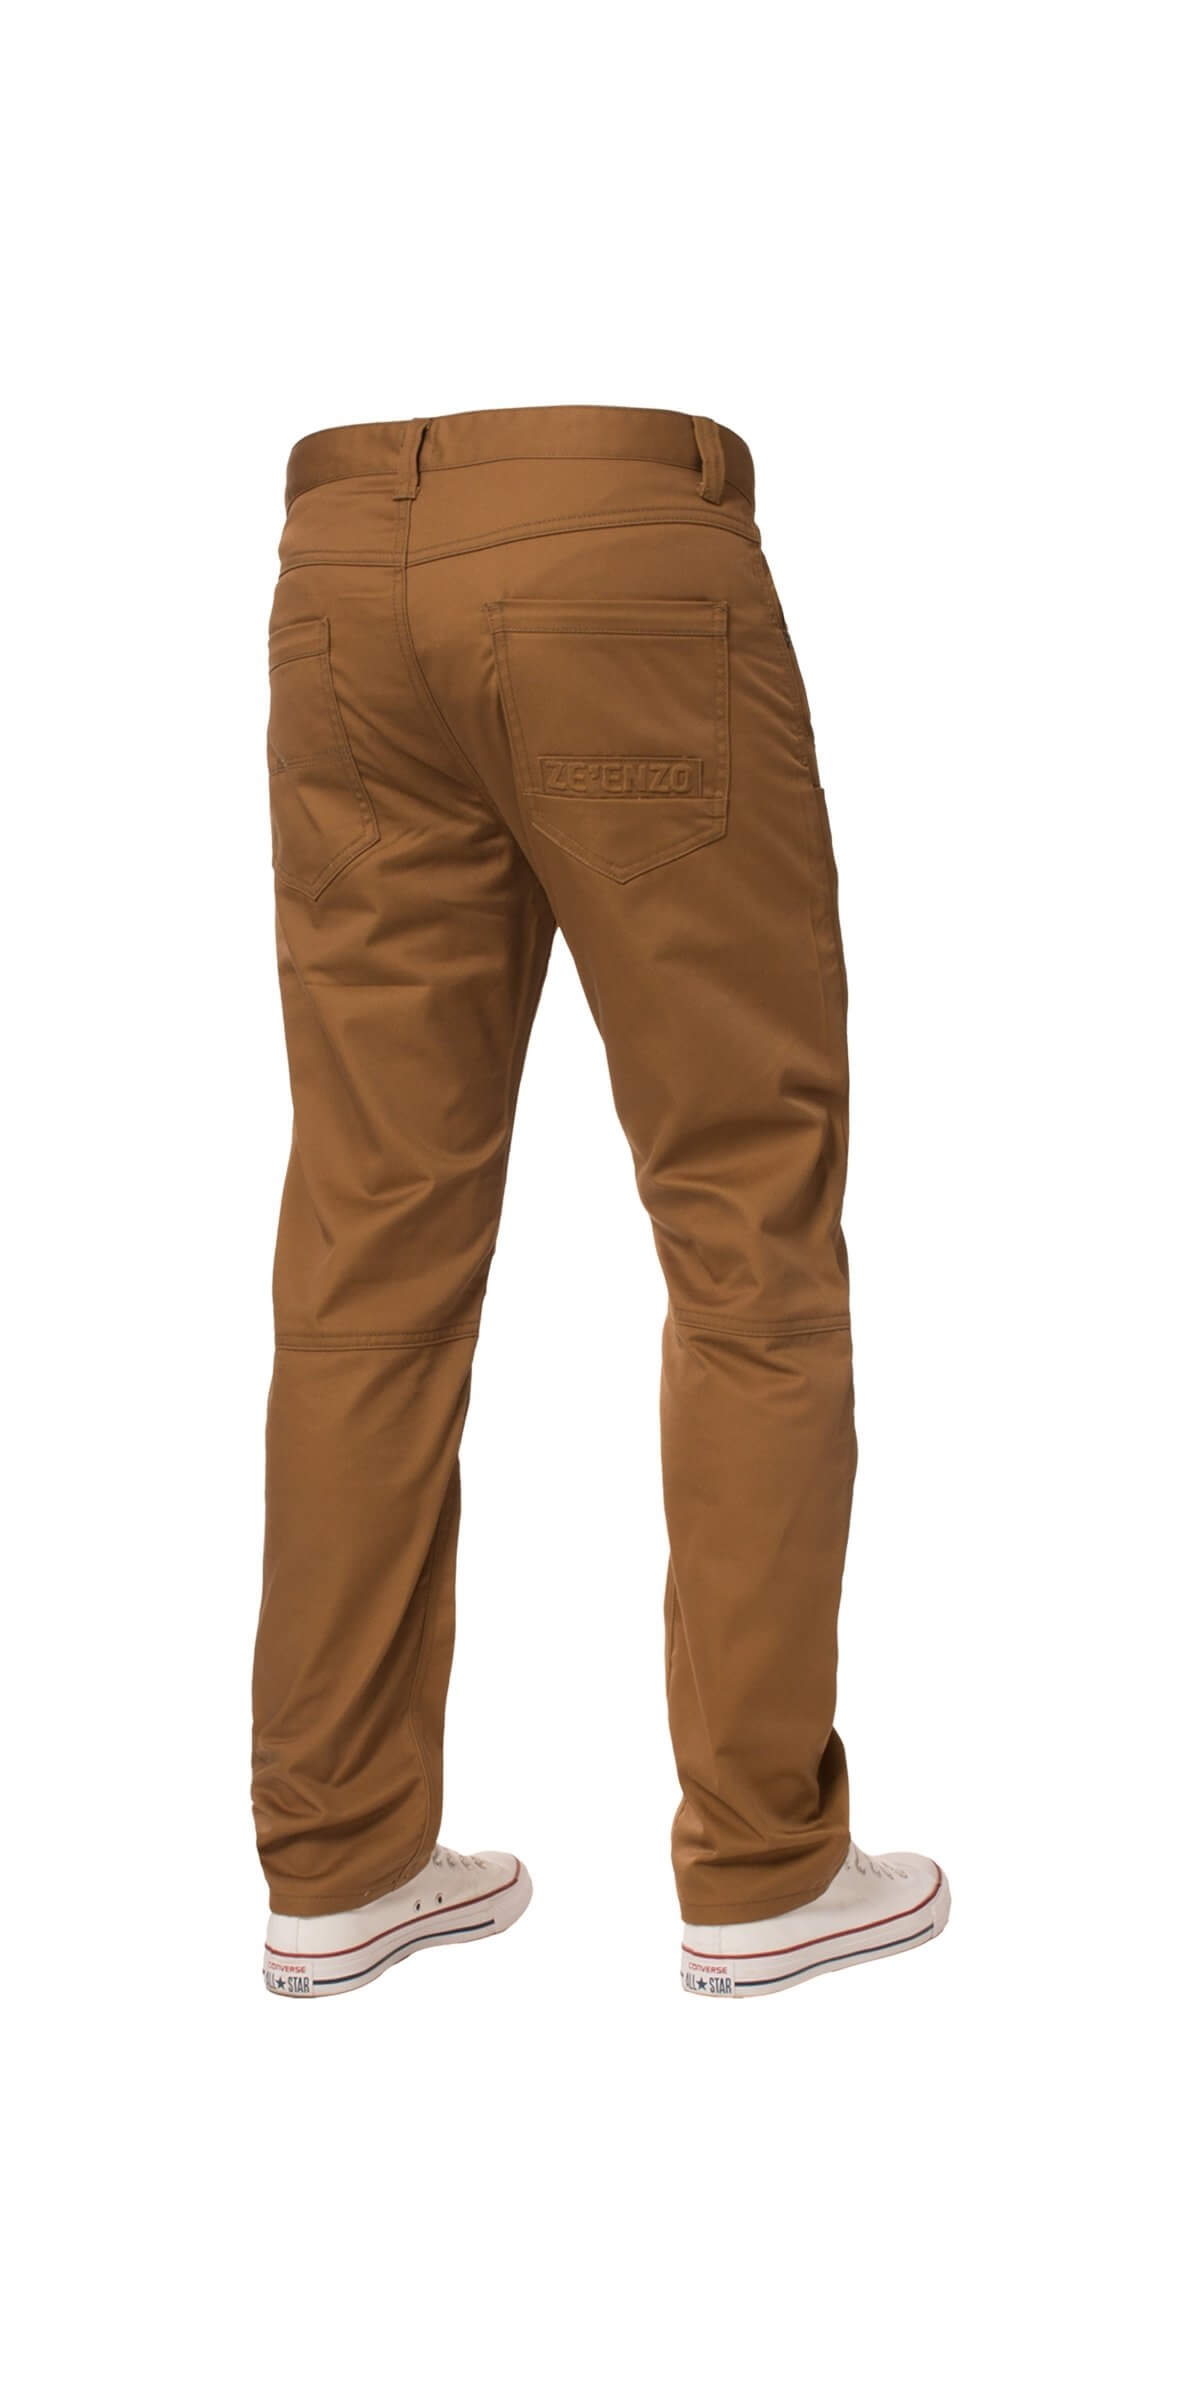 Clearance | Mens Straight Leg Regular Fit Chino Denim Jeans Tan | Enzo Designer Menswear